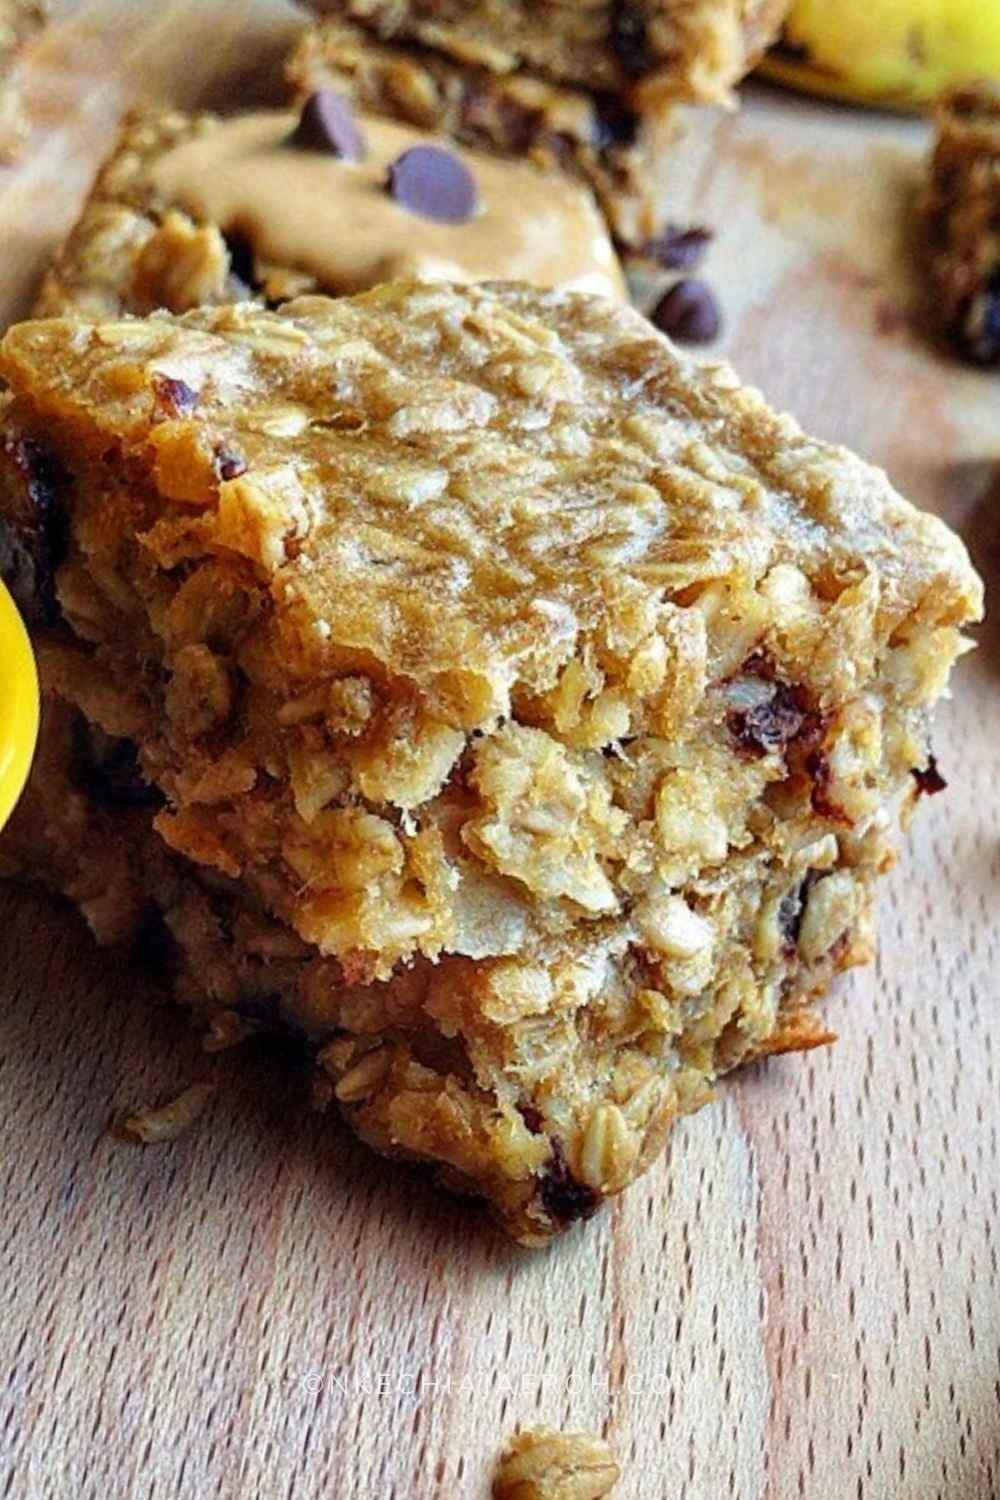 These naturally gluten-free peanut butter banana bars are packed with healthy fat, energy-giving oats, fruits, chocolate chips, and soft baked to perfection! It has the right amount of saltiness and flavors! These easy to make peanut butter snack is currently my family's best snack for so many reasons: Salty and flavorful! Easy to make (this is a no-brainer) Gluten-free, Crowd-pleaser!